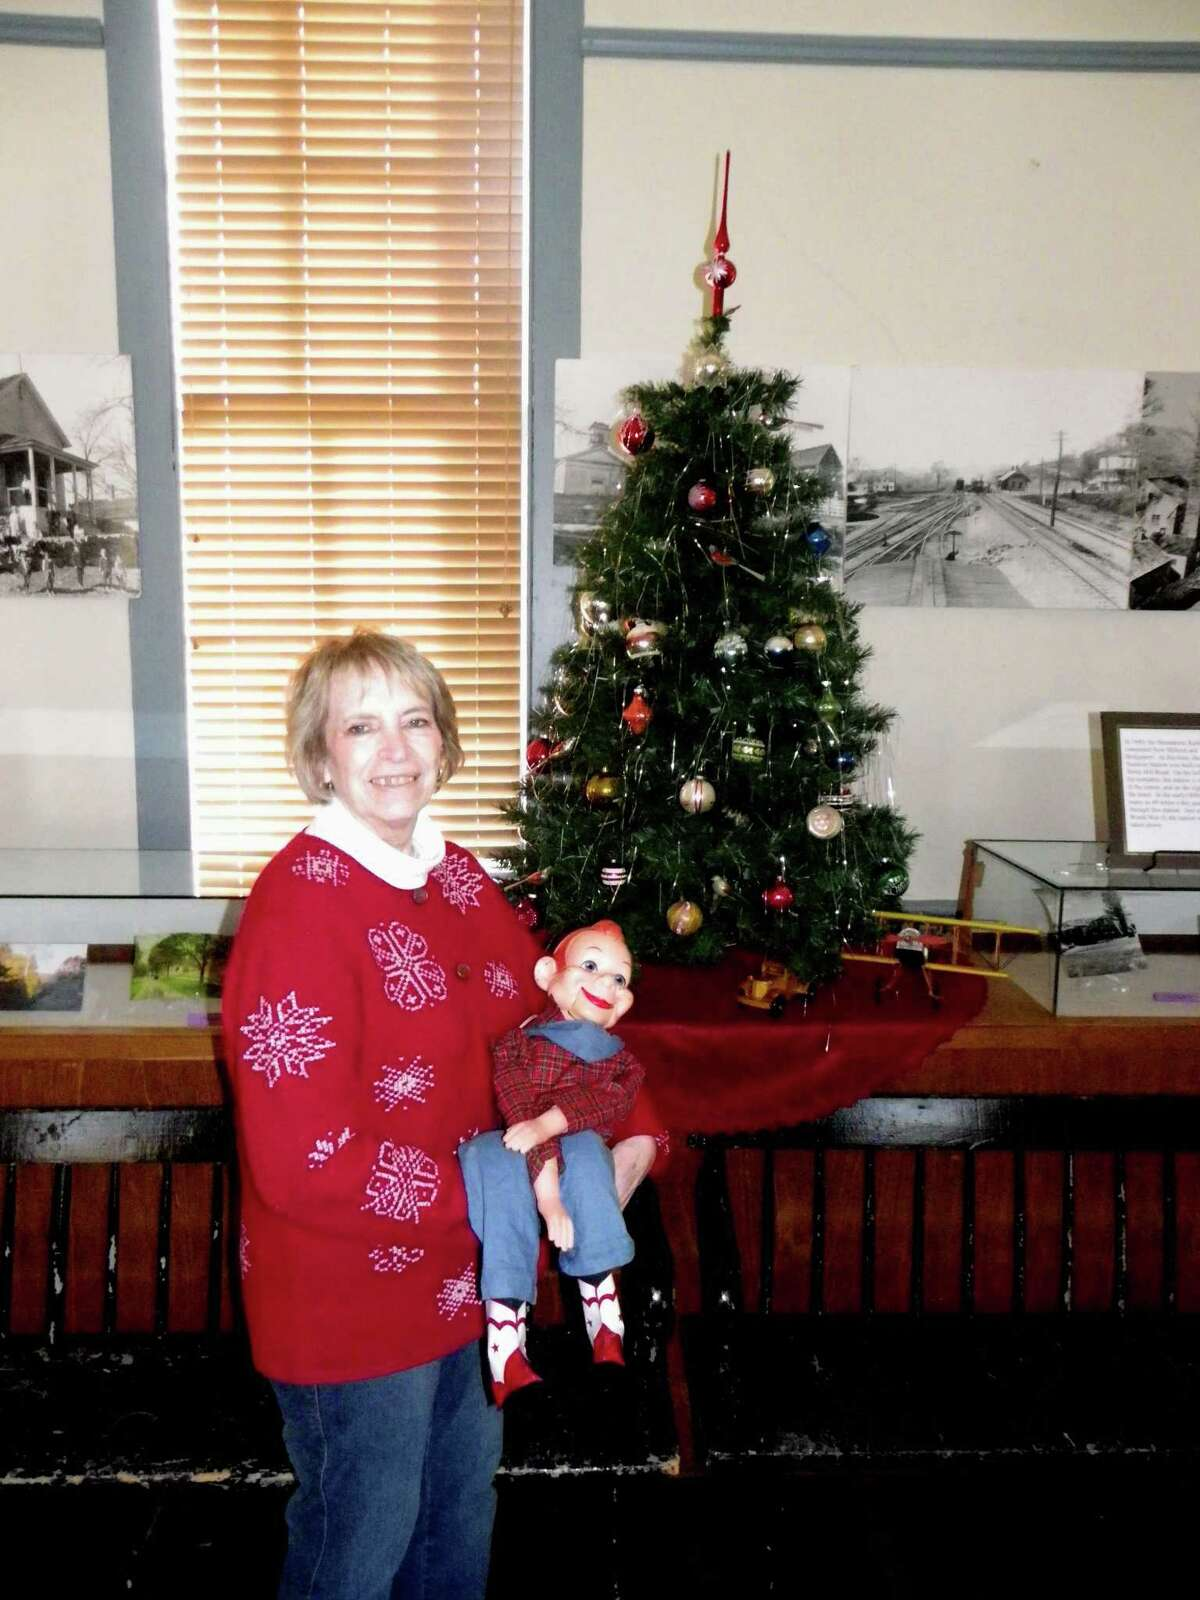 Barbara Golde, exhibit director for the Brookfield Historical Society, holds up a vintage Howdy Doody Puppet, one of the many classic dolls, toys and other items reminiscent of Christmases gone by that will be on display at the Brookfield Museum's seventh annual Traditional Christmas Open House